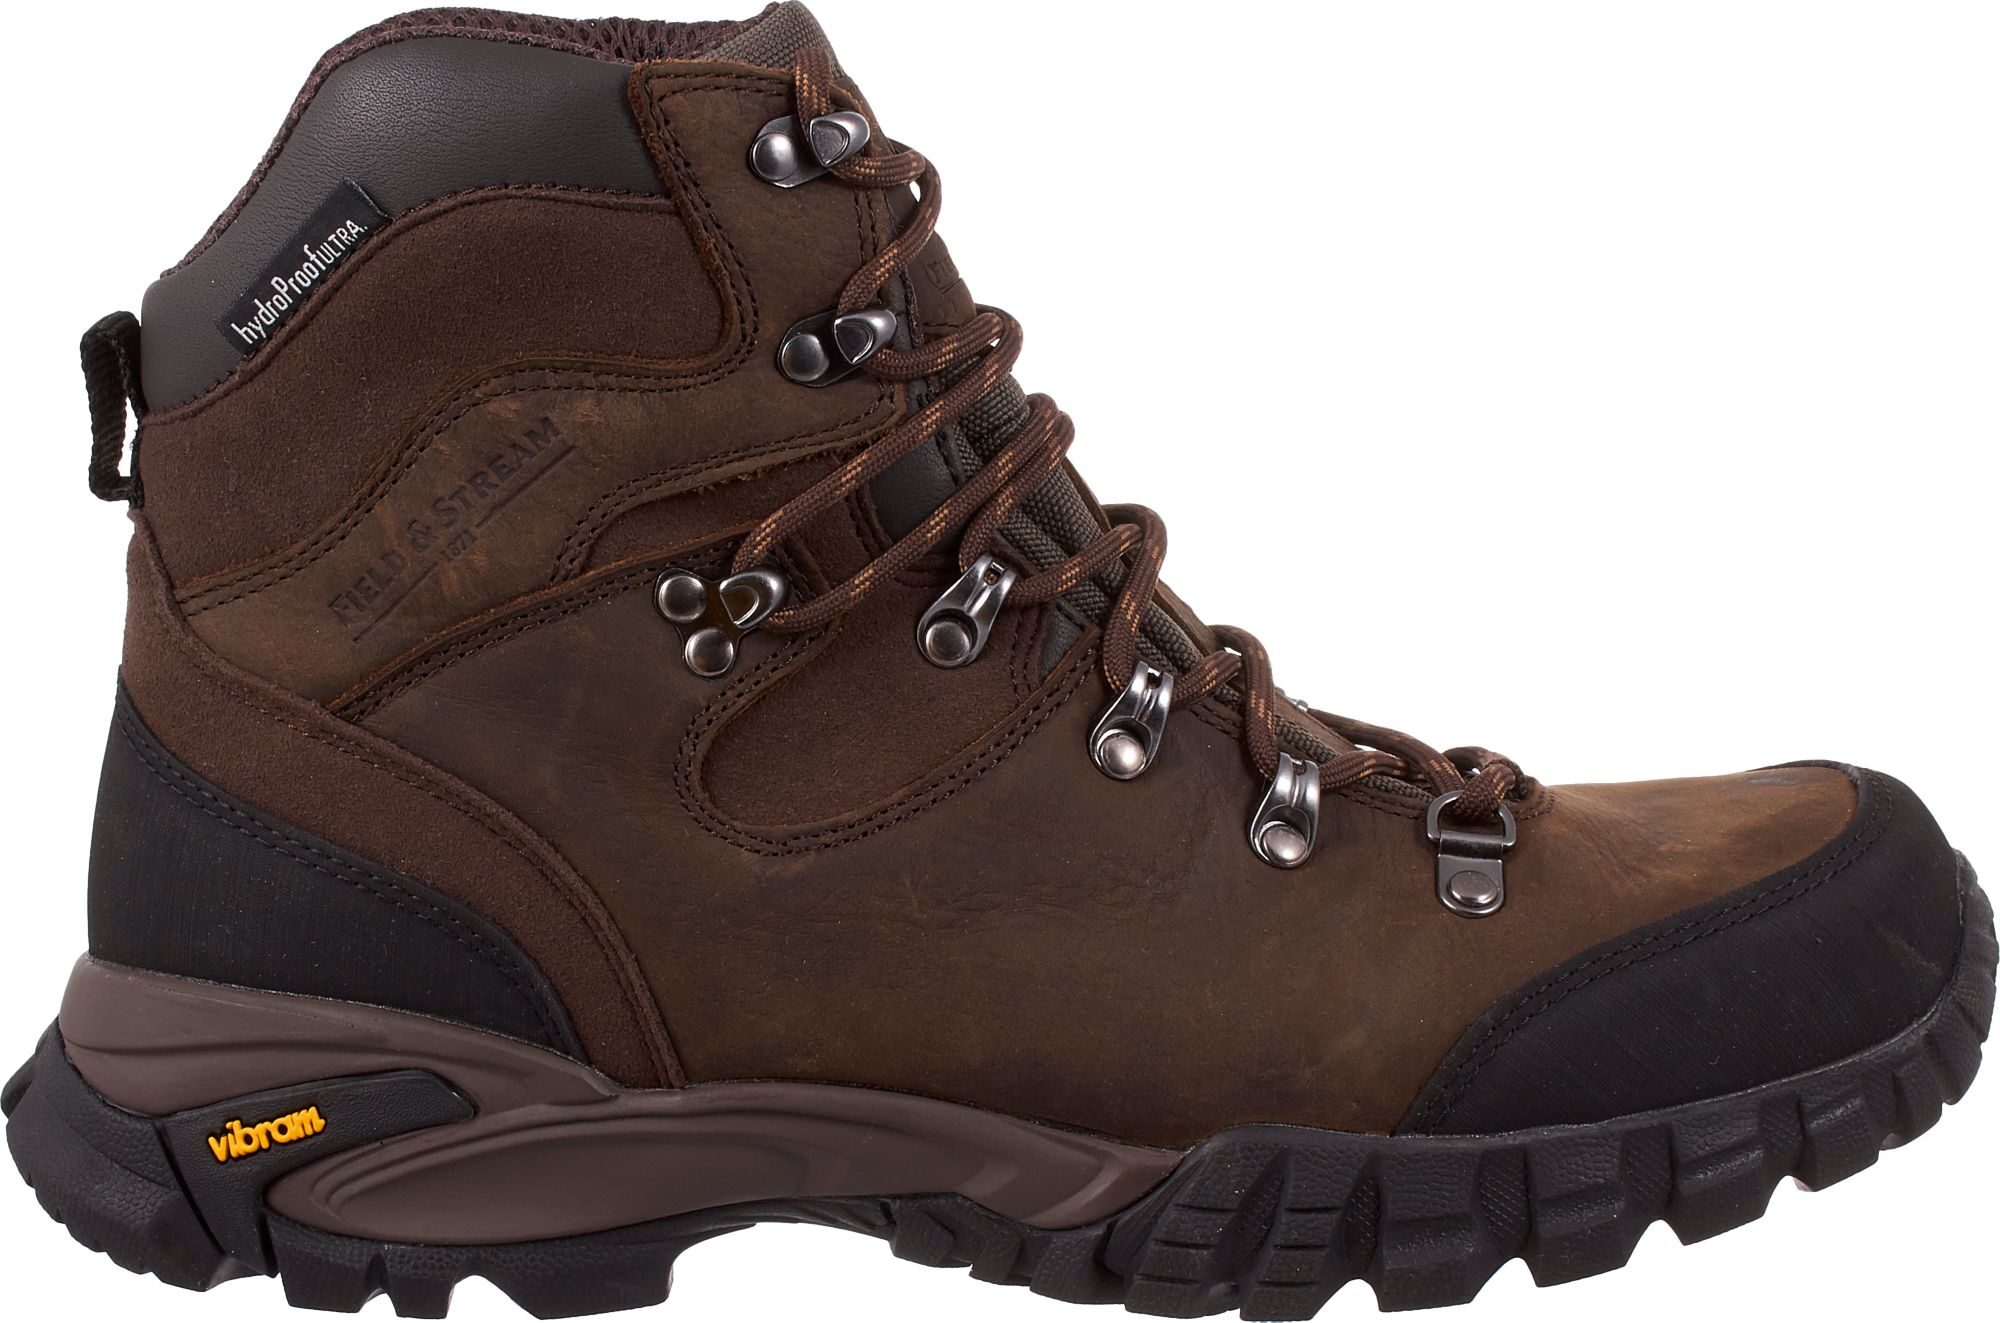 Men's Deep Creek Waterproof Hiking Boots